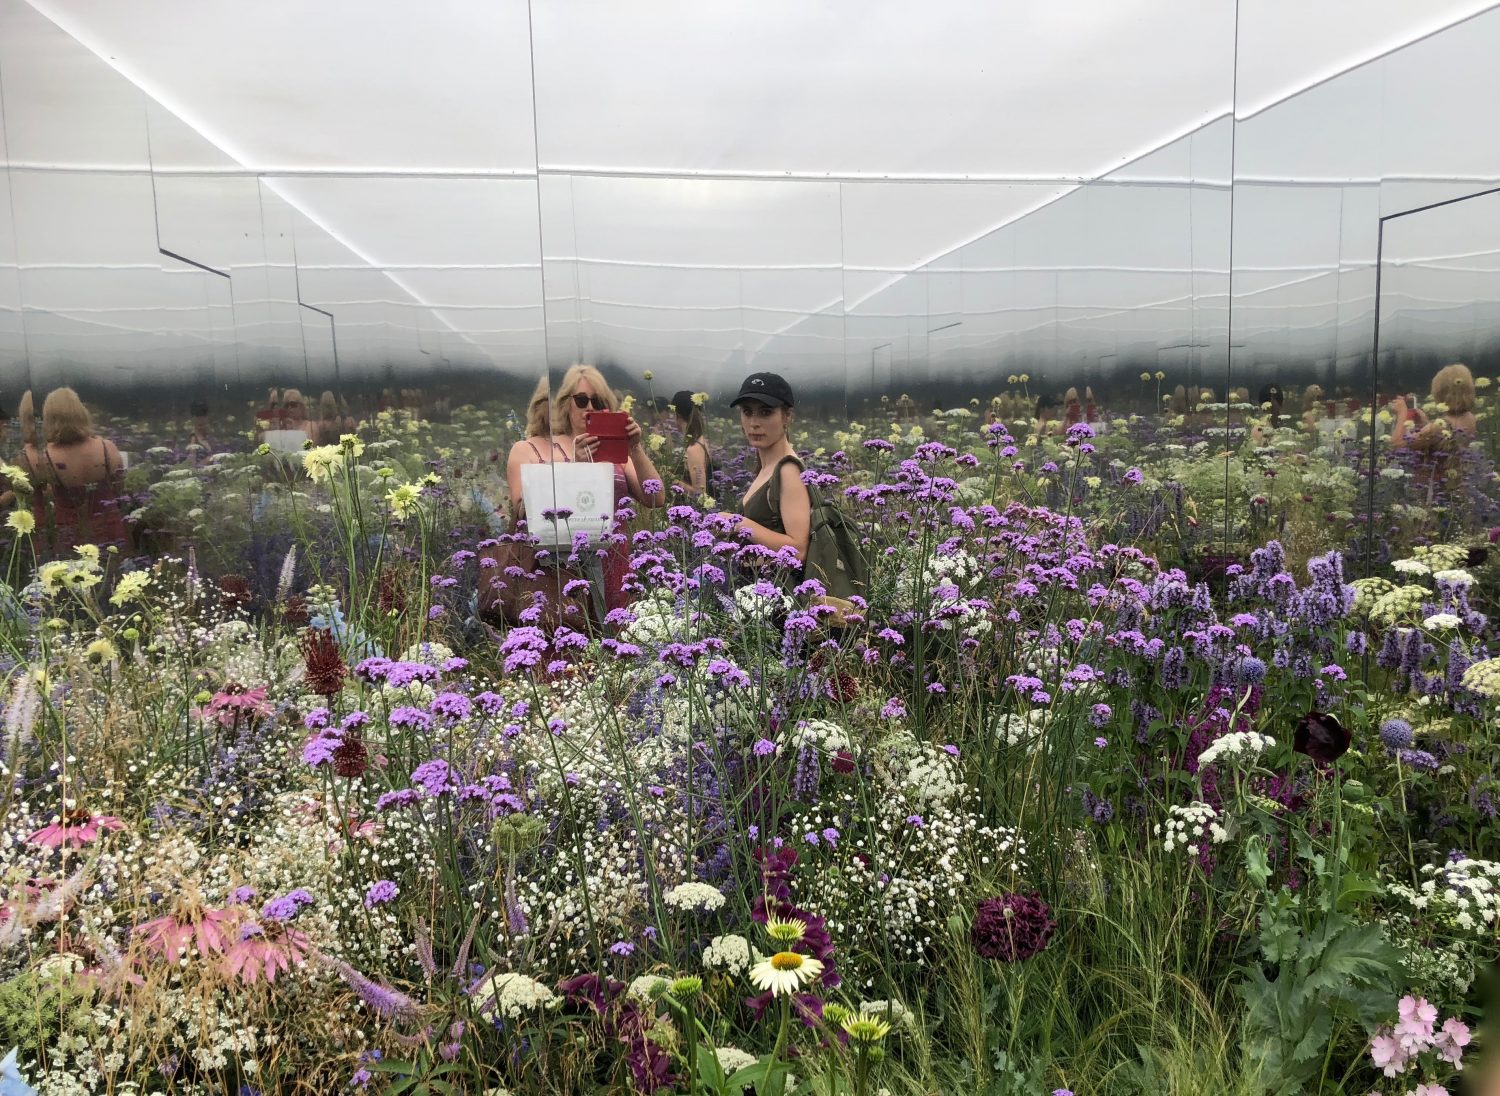 Hampton Court Flower show - meadow in a mirrored box by Alex Rainford-Roberts